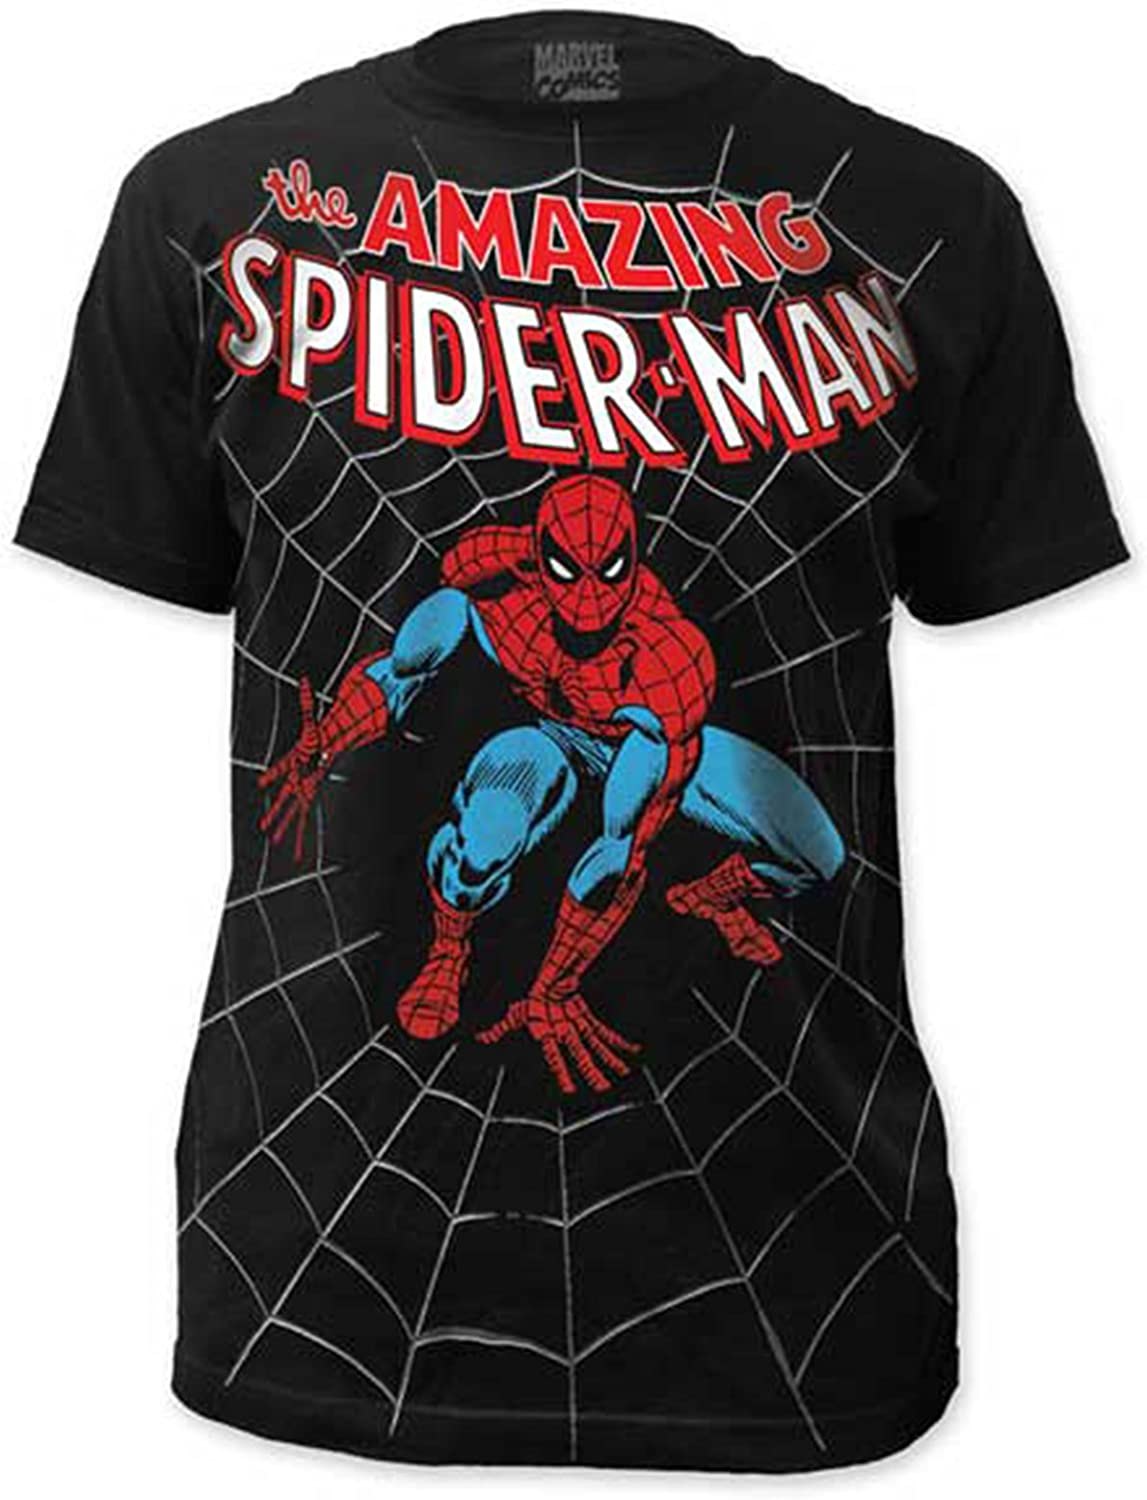 Spiderman T-shirt for men available in 3 colours size S-XXL